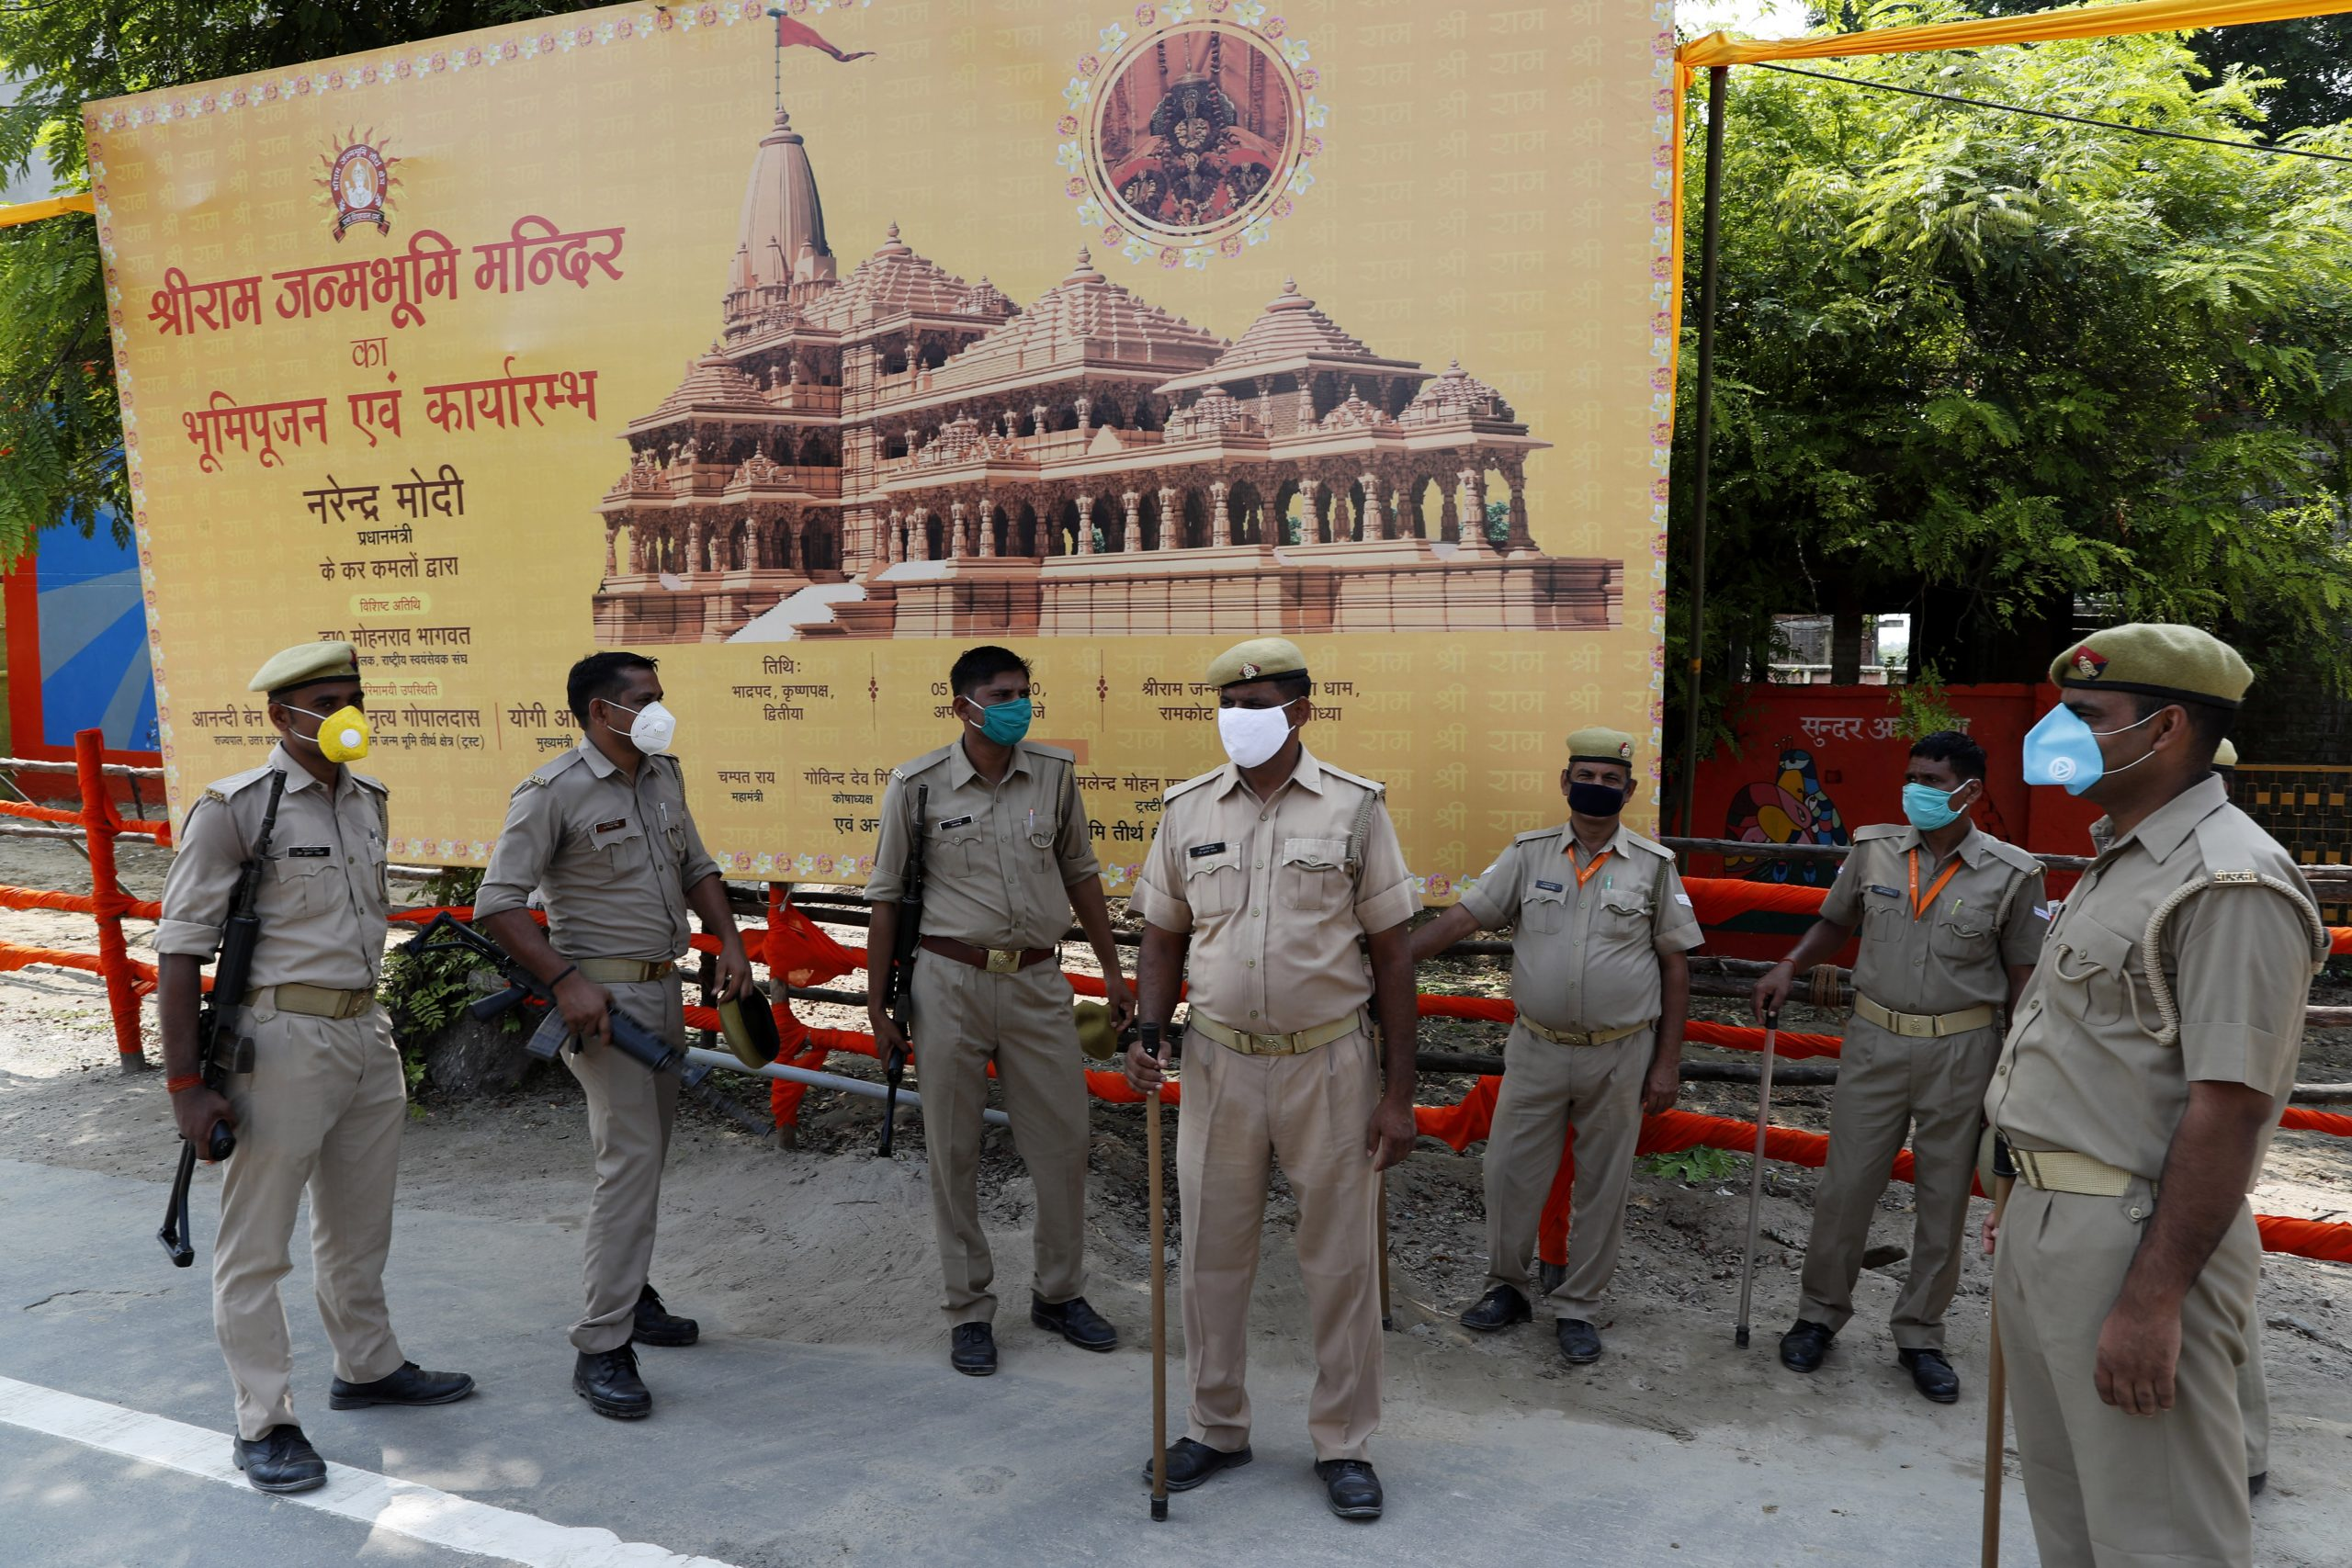 Policemen stand guard ahead of a groundbreaking ceremony of a temple dedicated to the Hindu god Ram in Ayodhya, in the Indian state of Uttar Pradesh, Tuesday, Aug. 4, 2020. (AP Photo/Rajesh Kumar Singh)